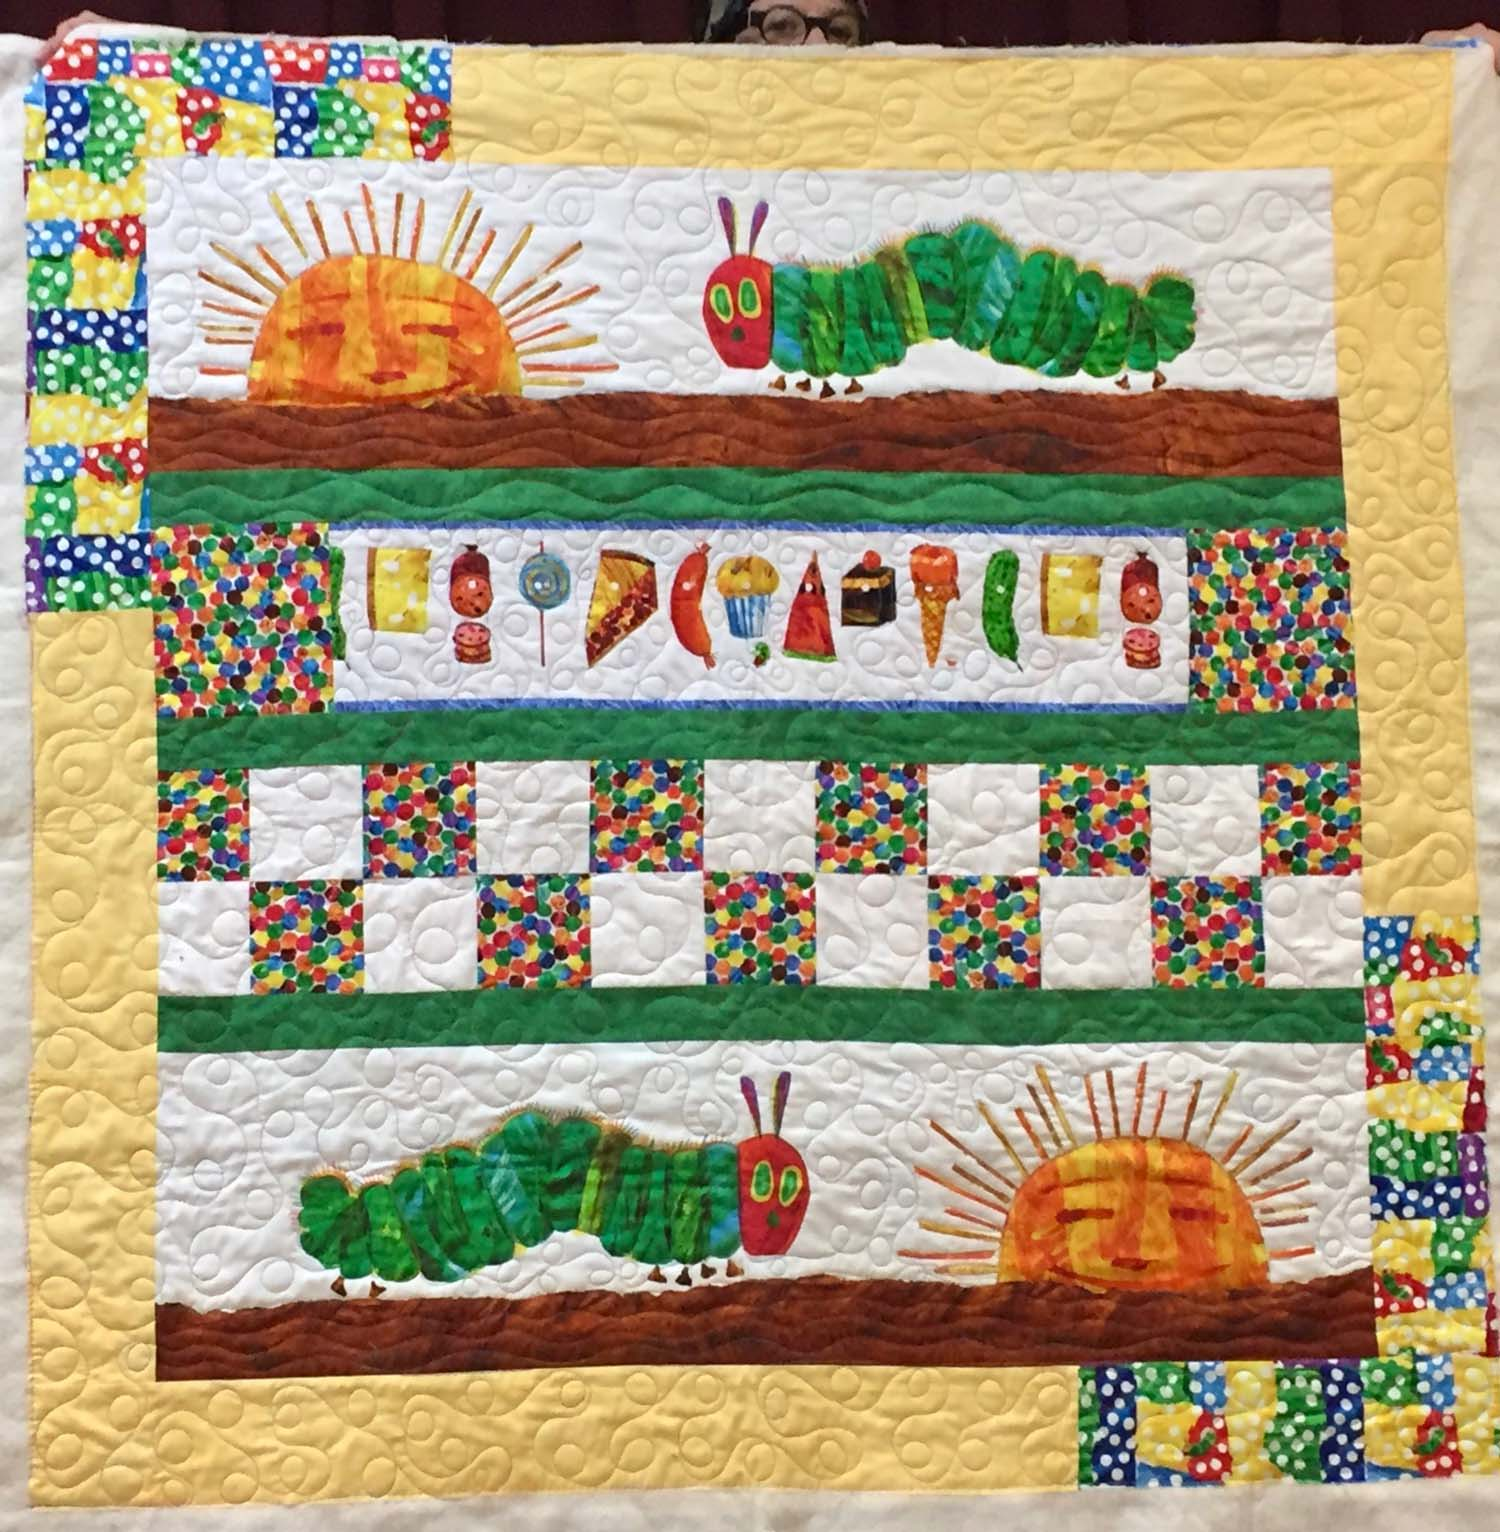 Hungry Caterpillar quilt front by Kathy O'Leary